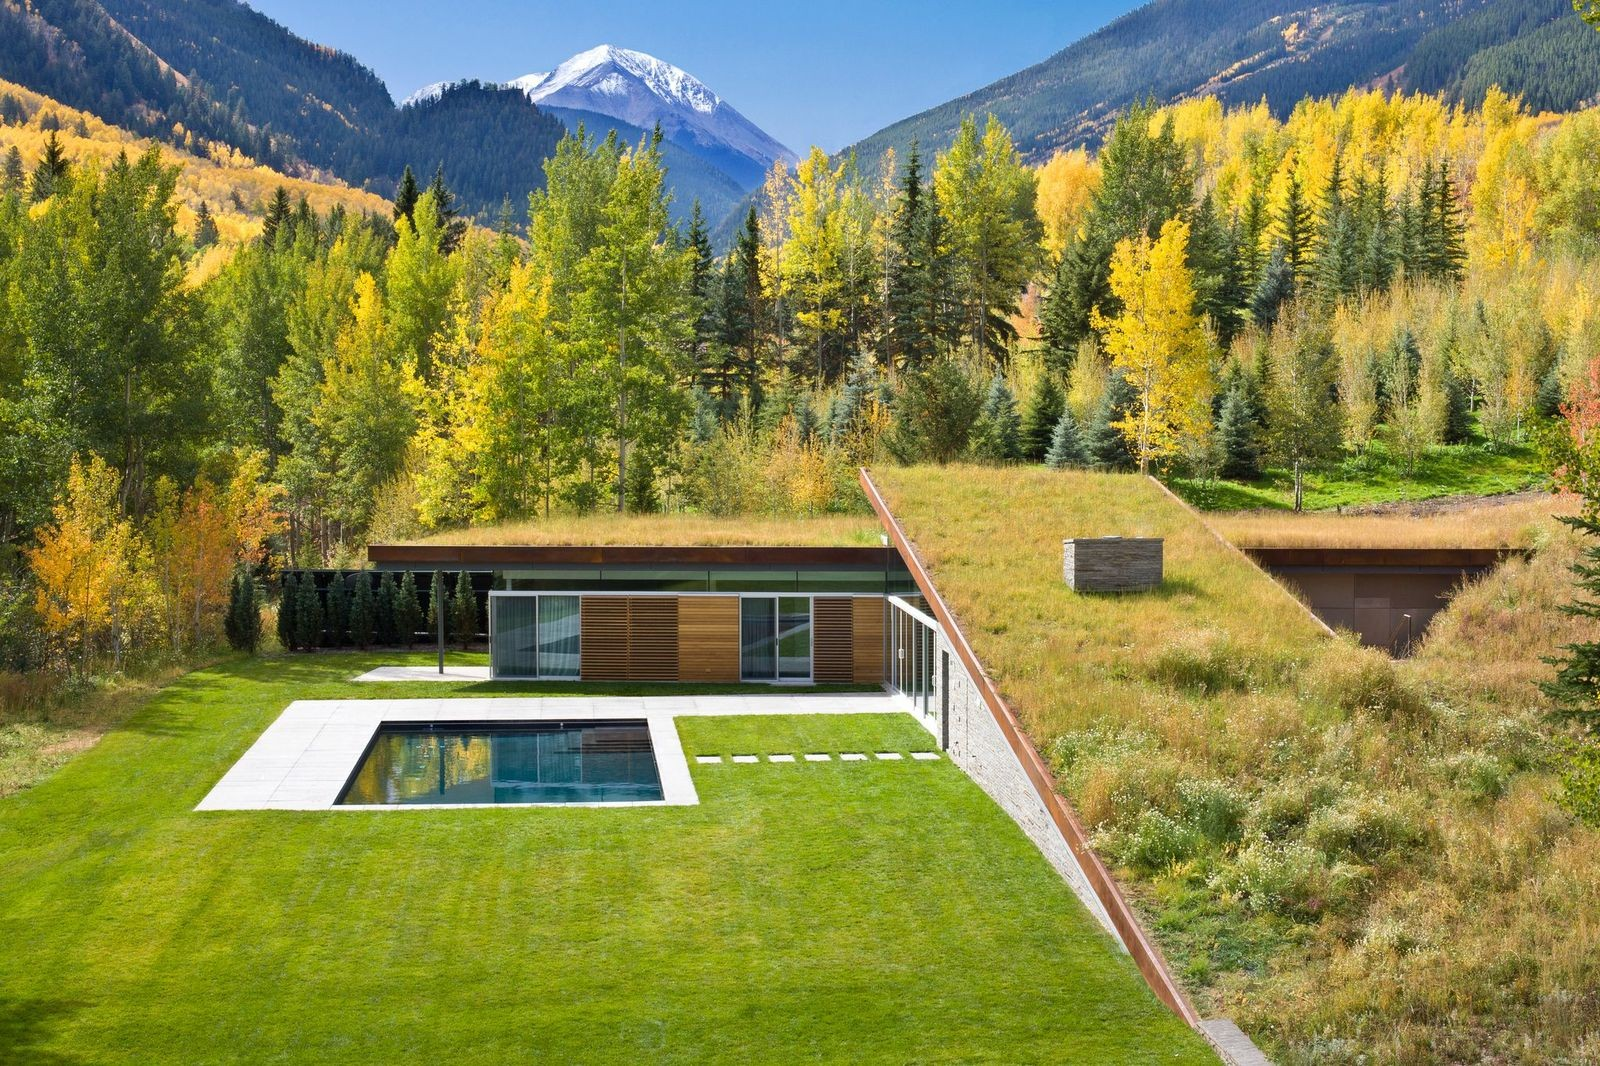 2013 AIA Housing Awards Announced | ArchDaily Natural Architecture Design Homes on nature architecture, natural modern architecture, natural light architecture,